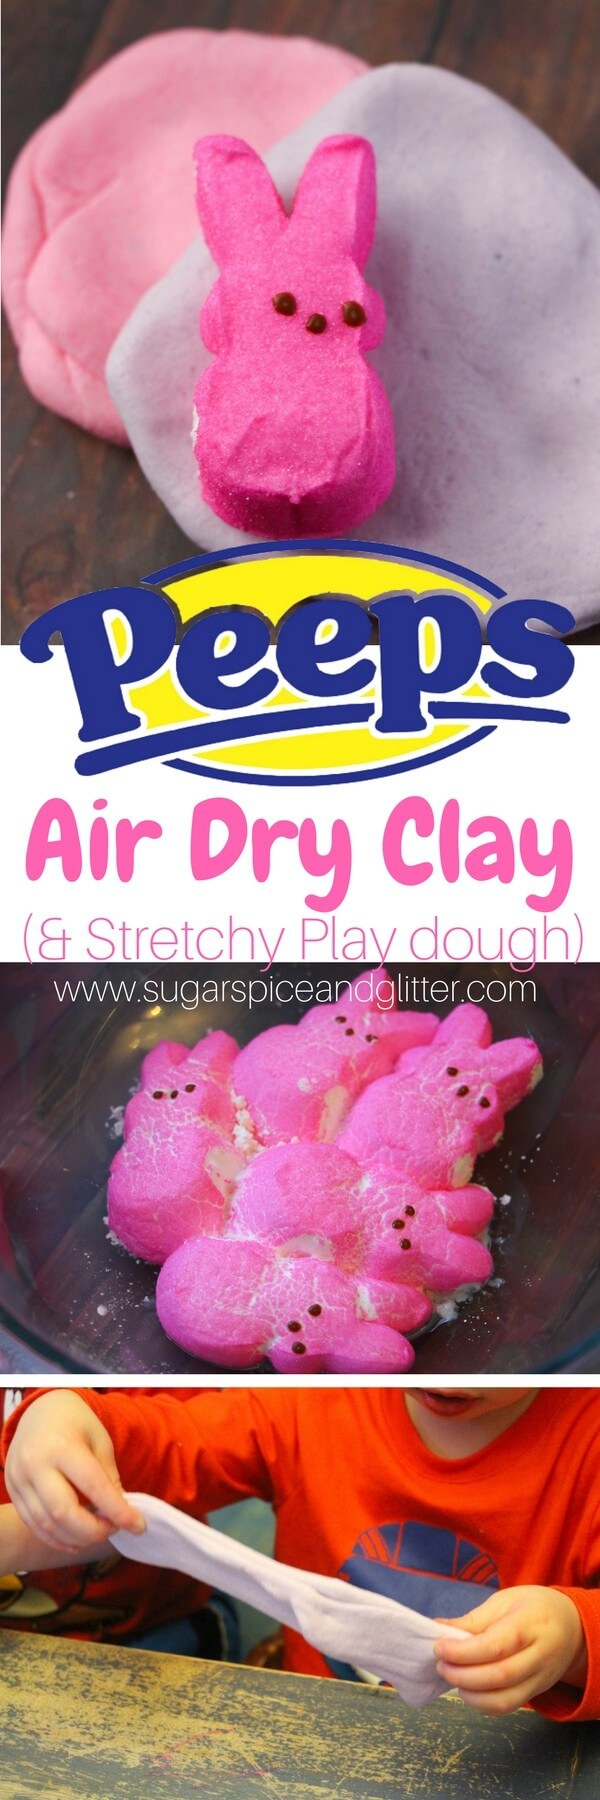 how to make air dry clay no cornstarch